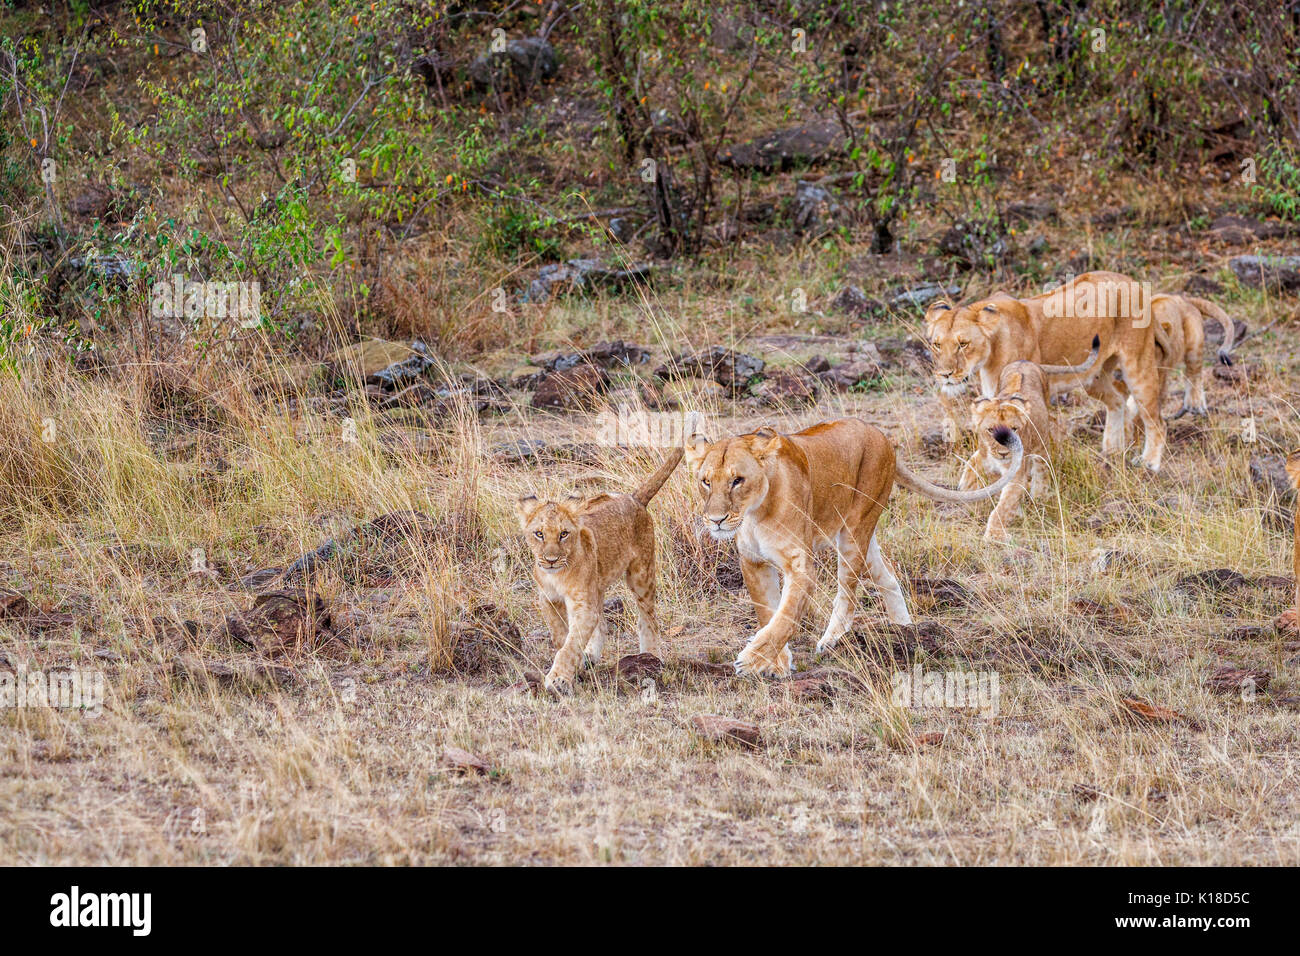 Family of Mara lions (Panthera leo|), two female lionesses and four cubs walking in the savannah of the Masai Mara, Kenya - Stock Image